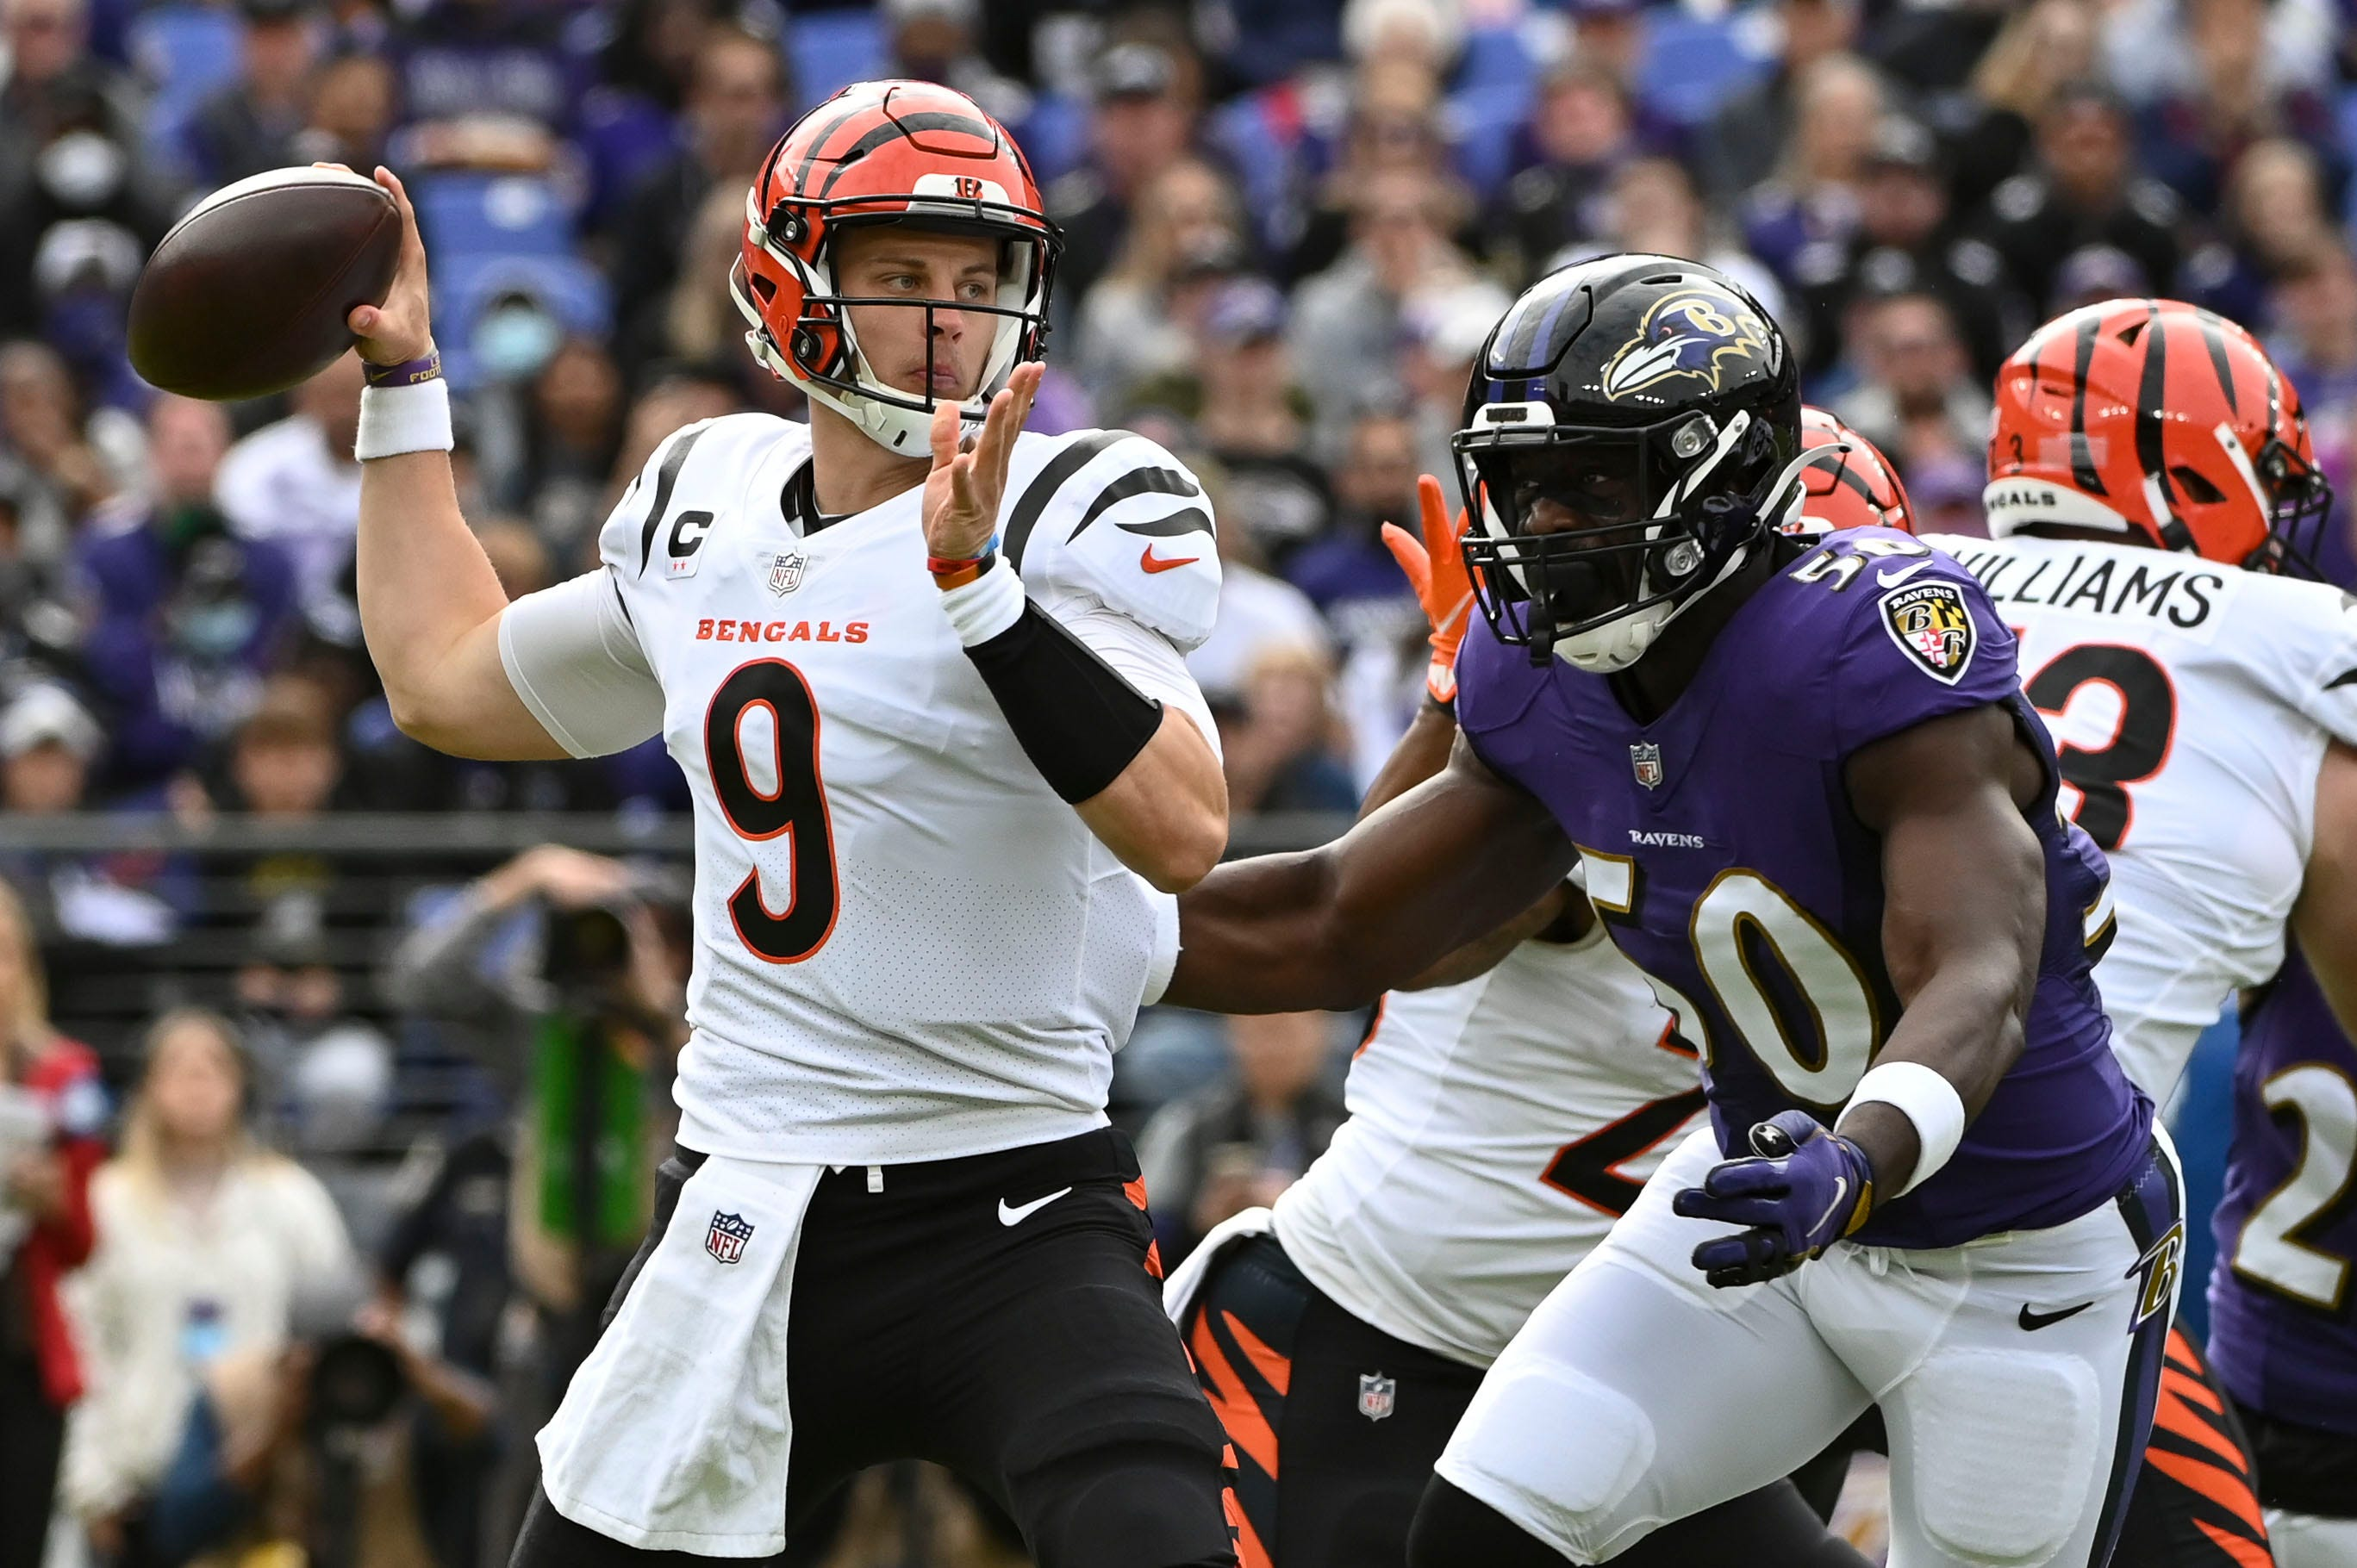 'We're always chasing the perfect game': Why Joe Burrow, Bengals aren't satisfied at 5-2